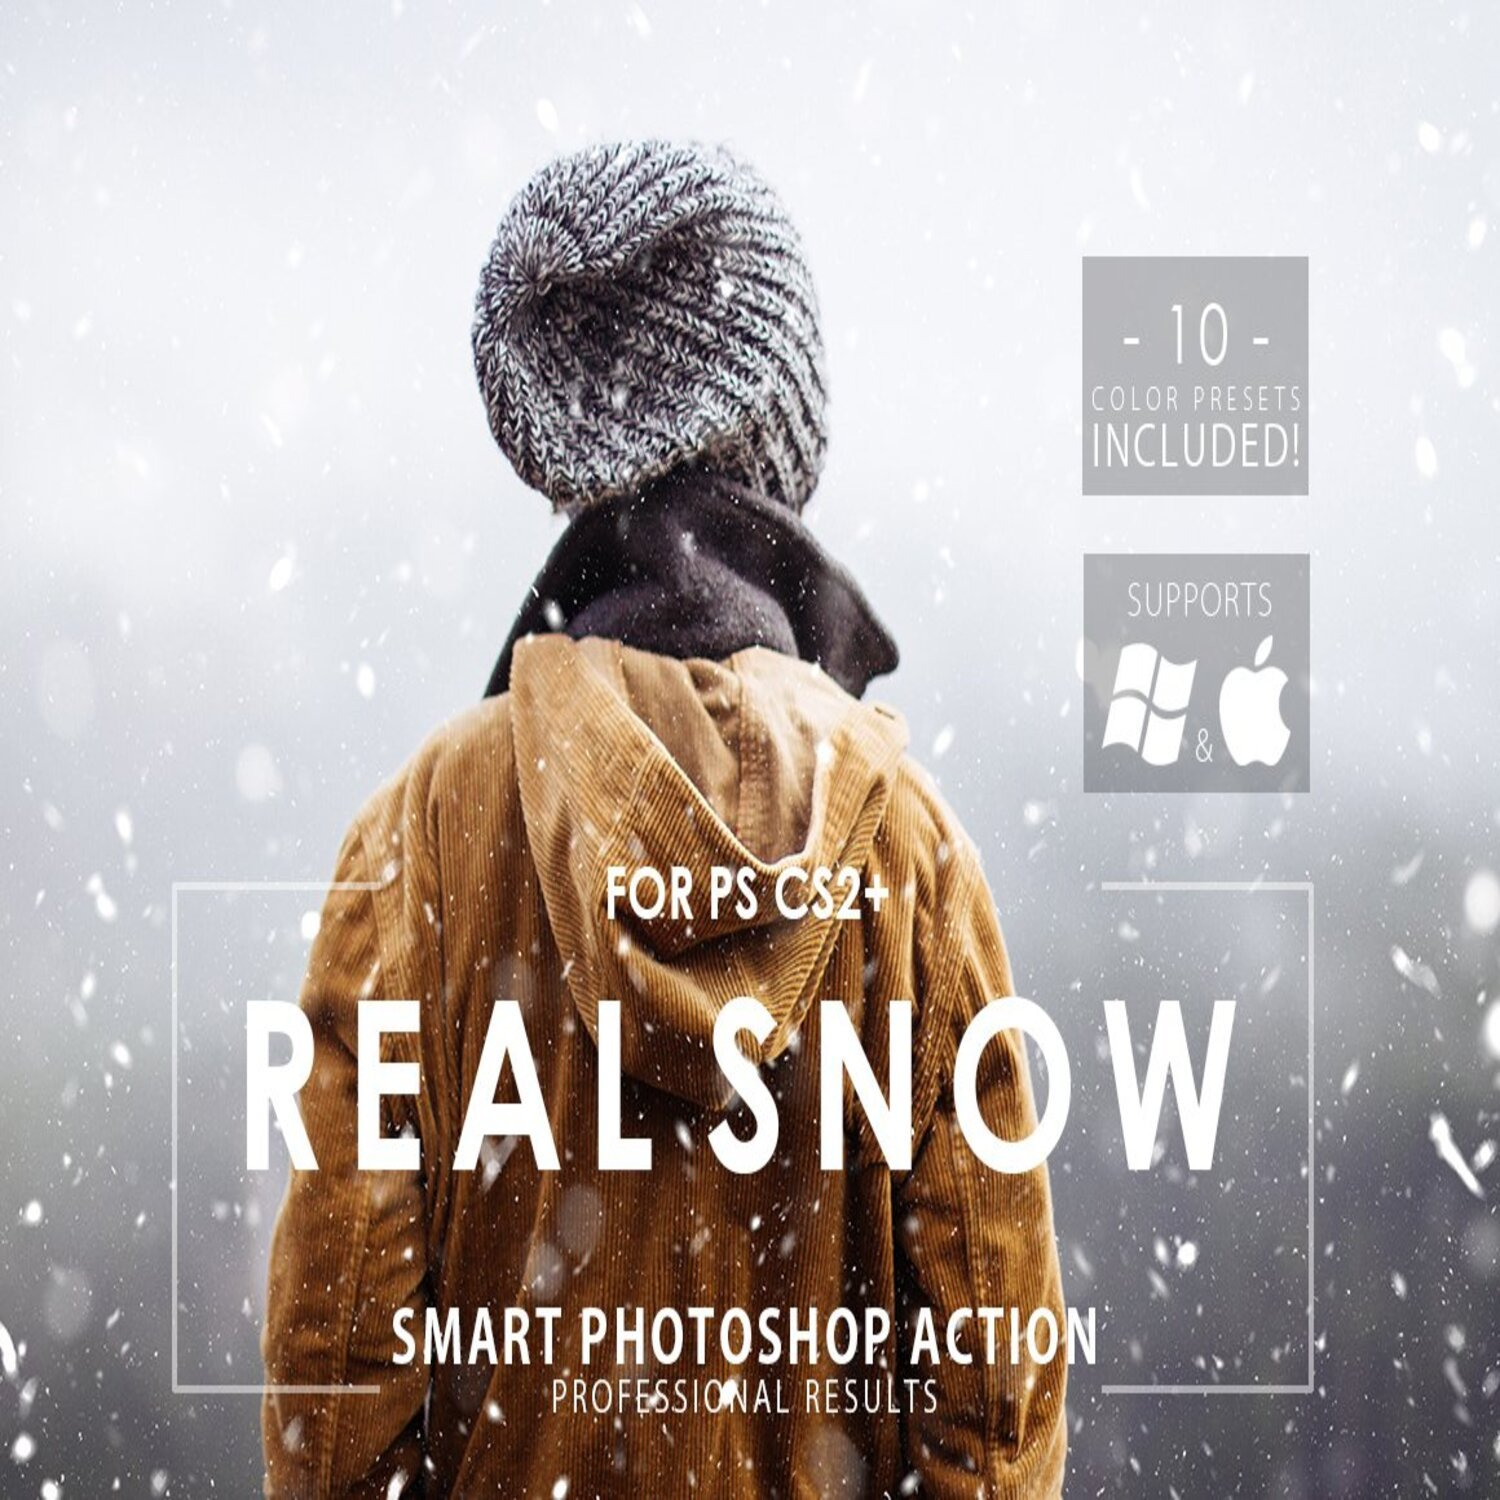 Real Snow Photoshop Action main cover.